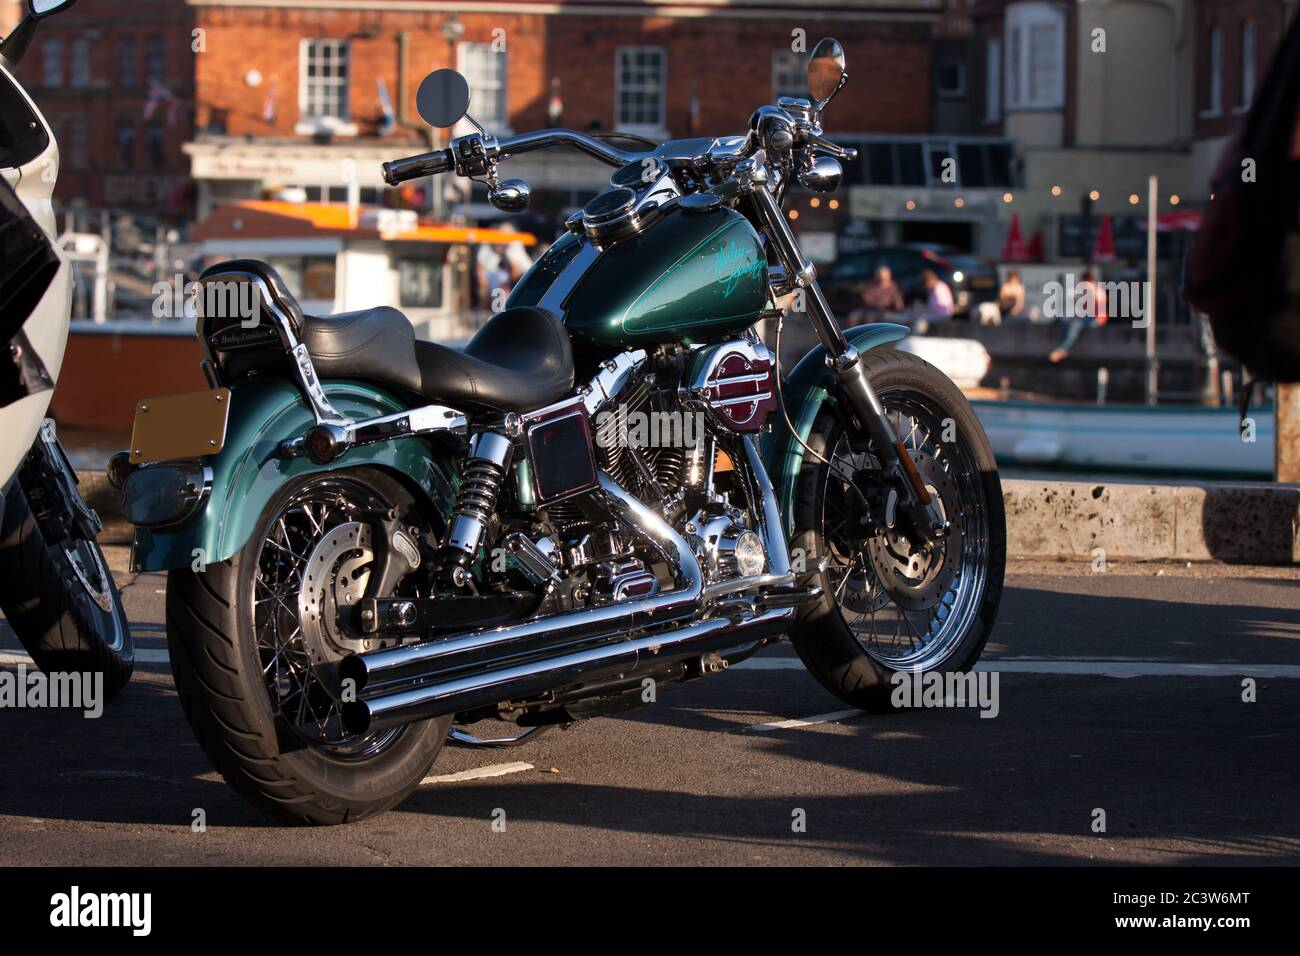 https www alamy com a green harley davidson motorcycle with vance and hines exhaust pipes parked overlooking the harbour on weymouth quayside image363815784 html